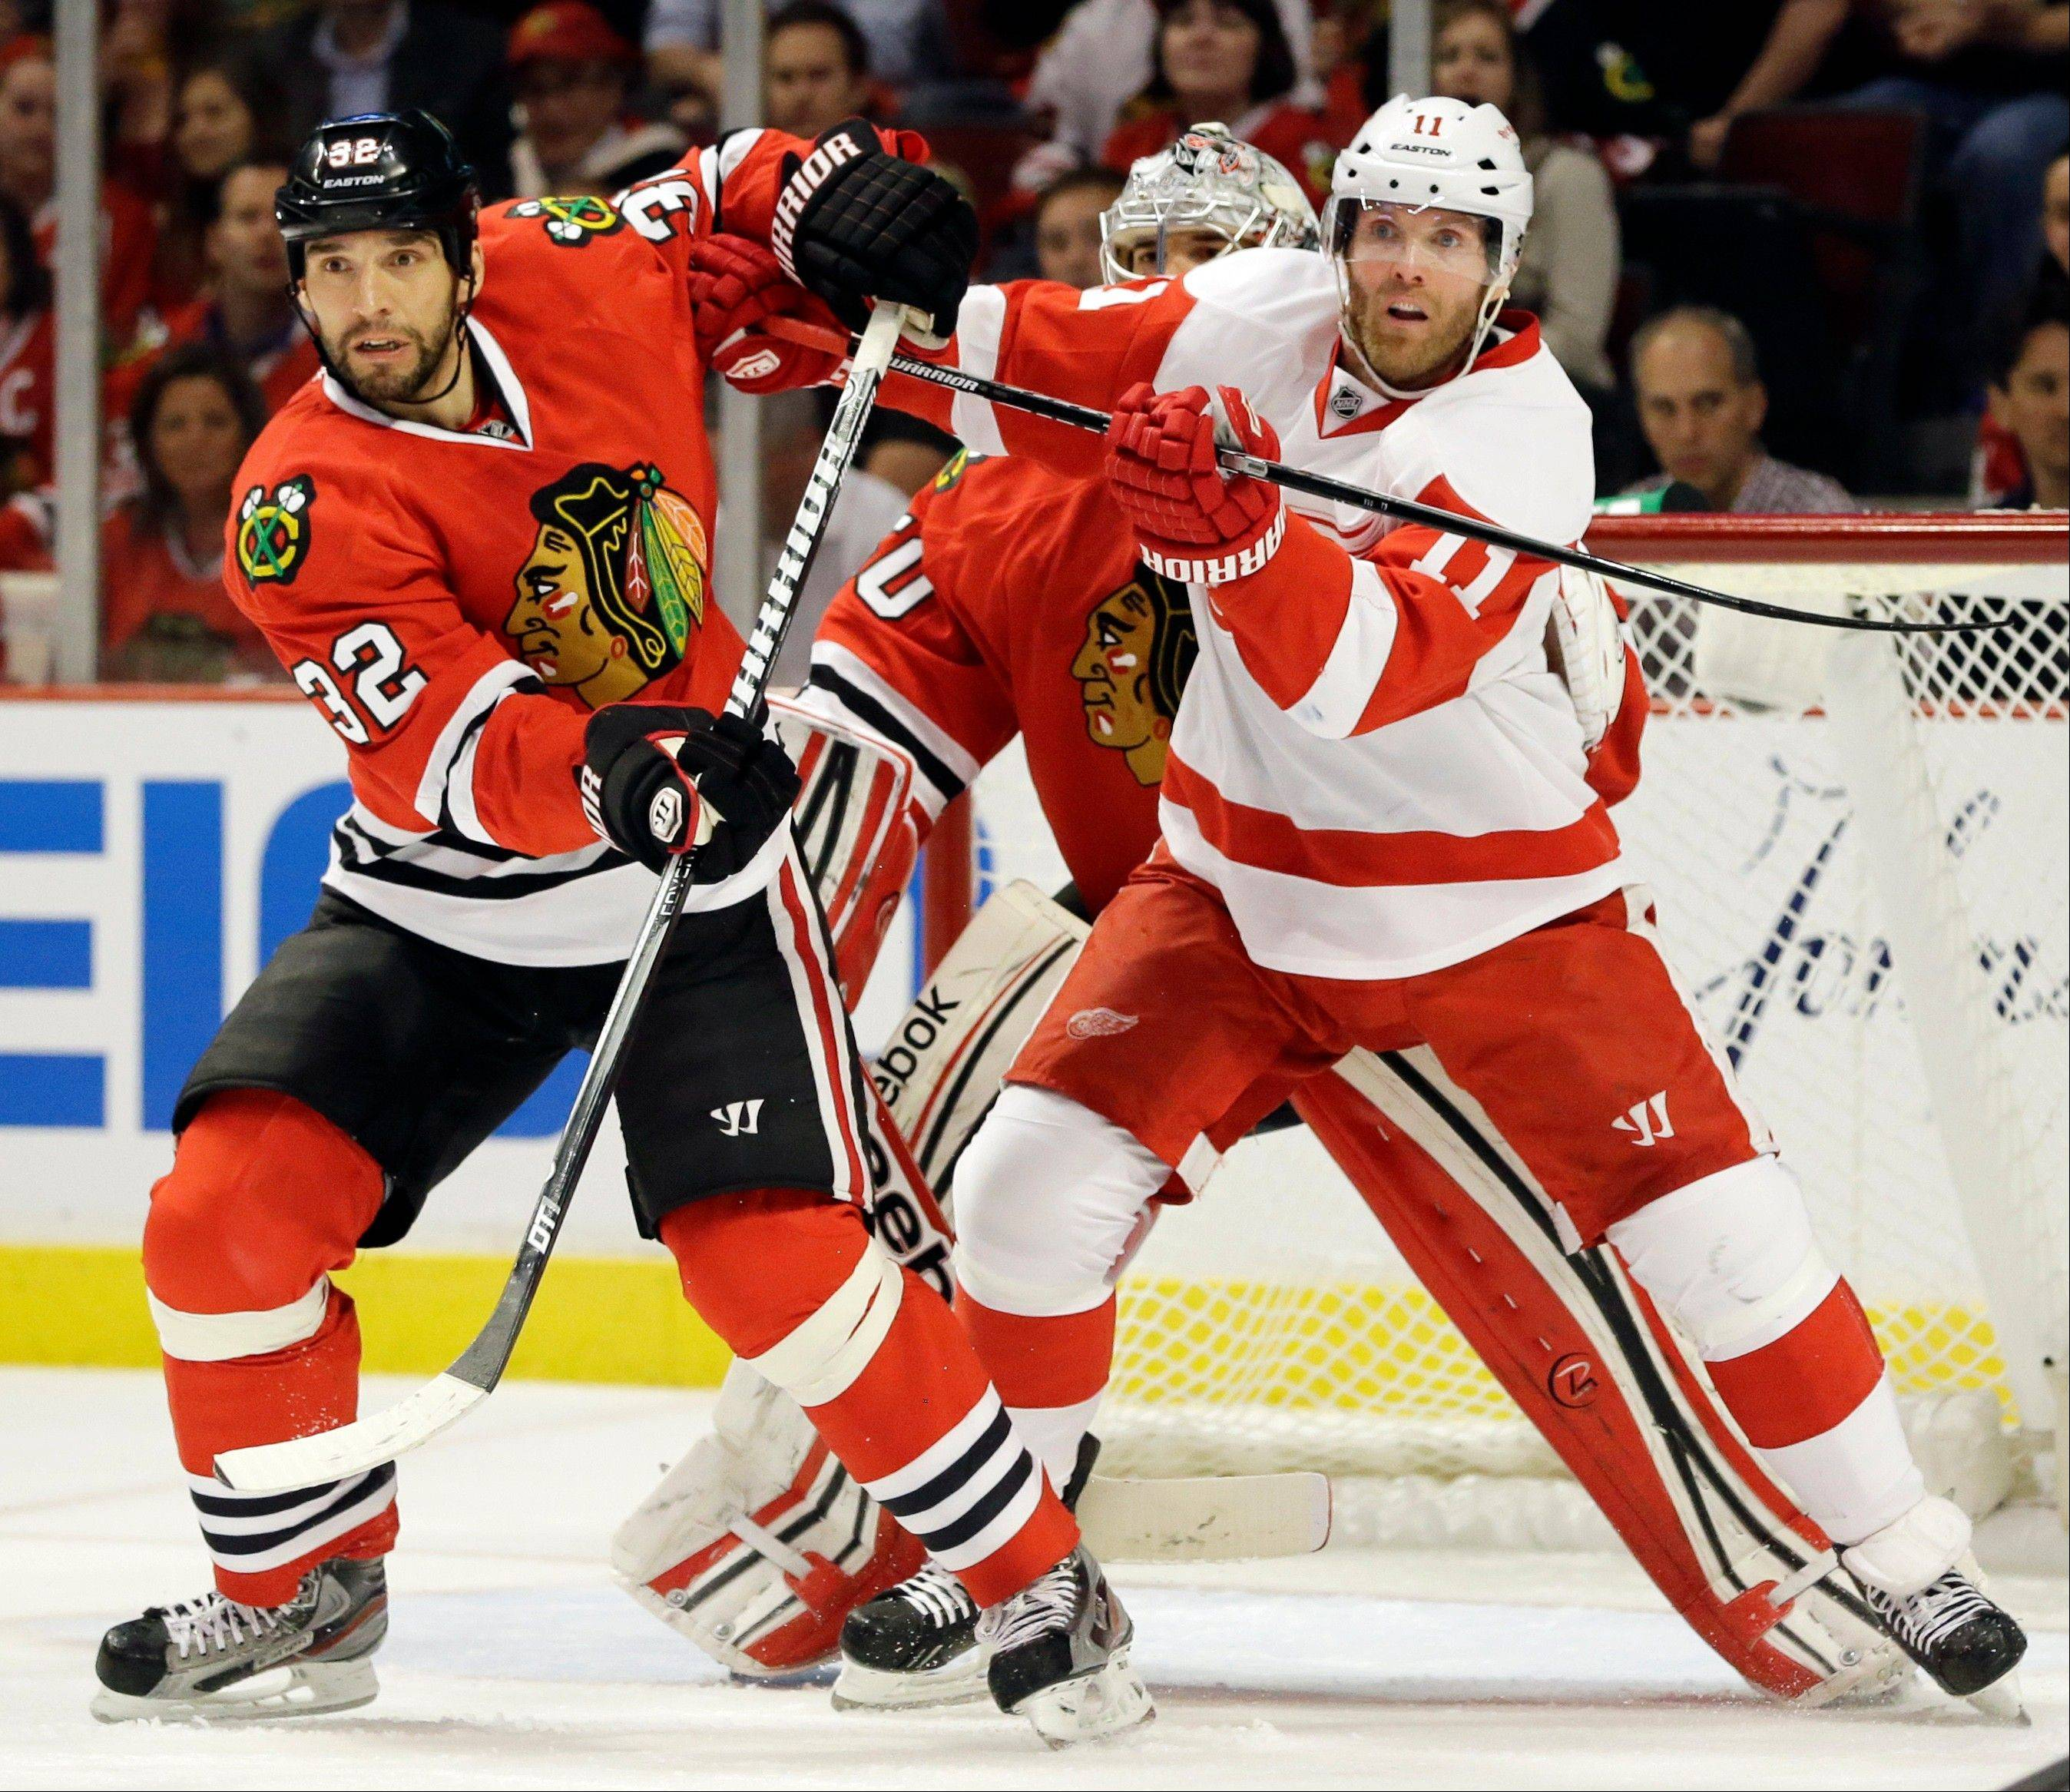 Detroit Red Wings' Daniel Cleary, right, and Chicago Blackhawks' Michal Rozsival battle as they wait for the puck during the first period of Game 1 of an NHL hockey playoffs Western Conference semifinal in Chicago, Wednesday, May 15, 2013.